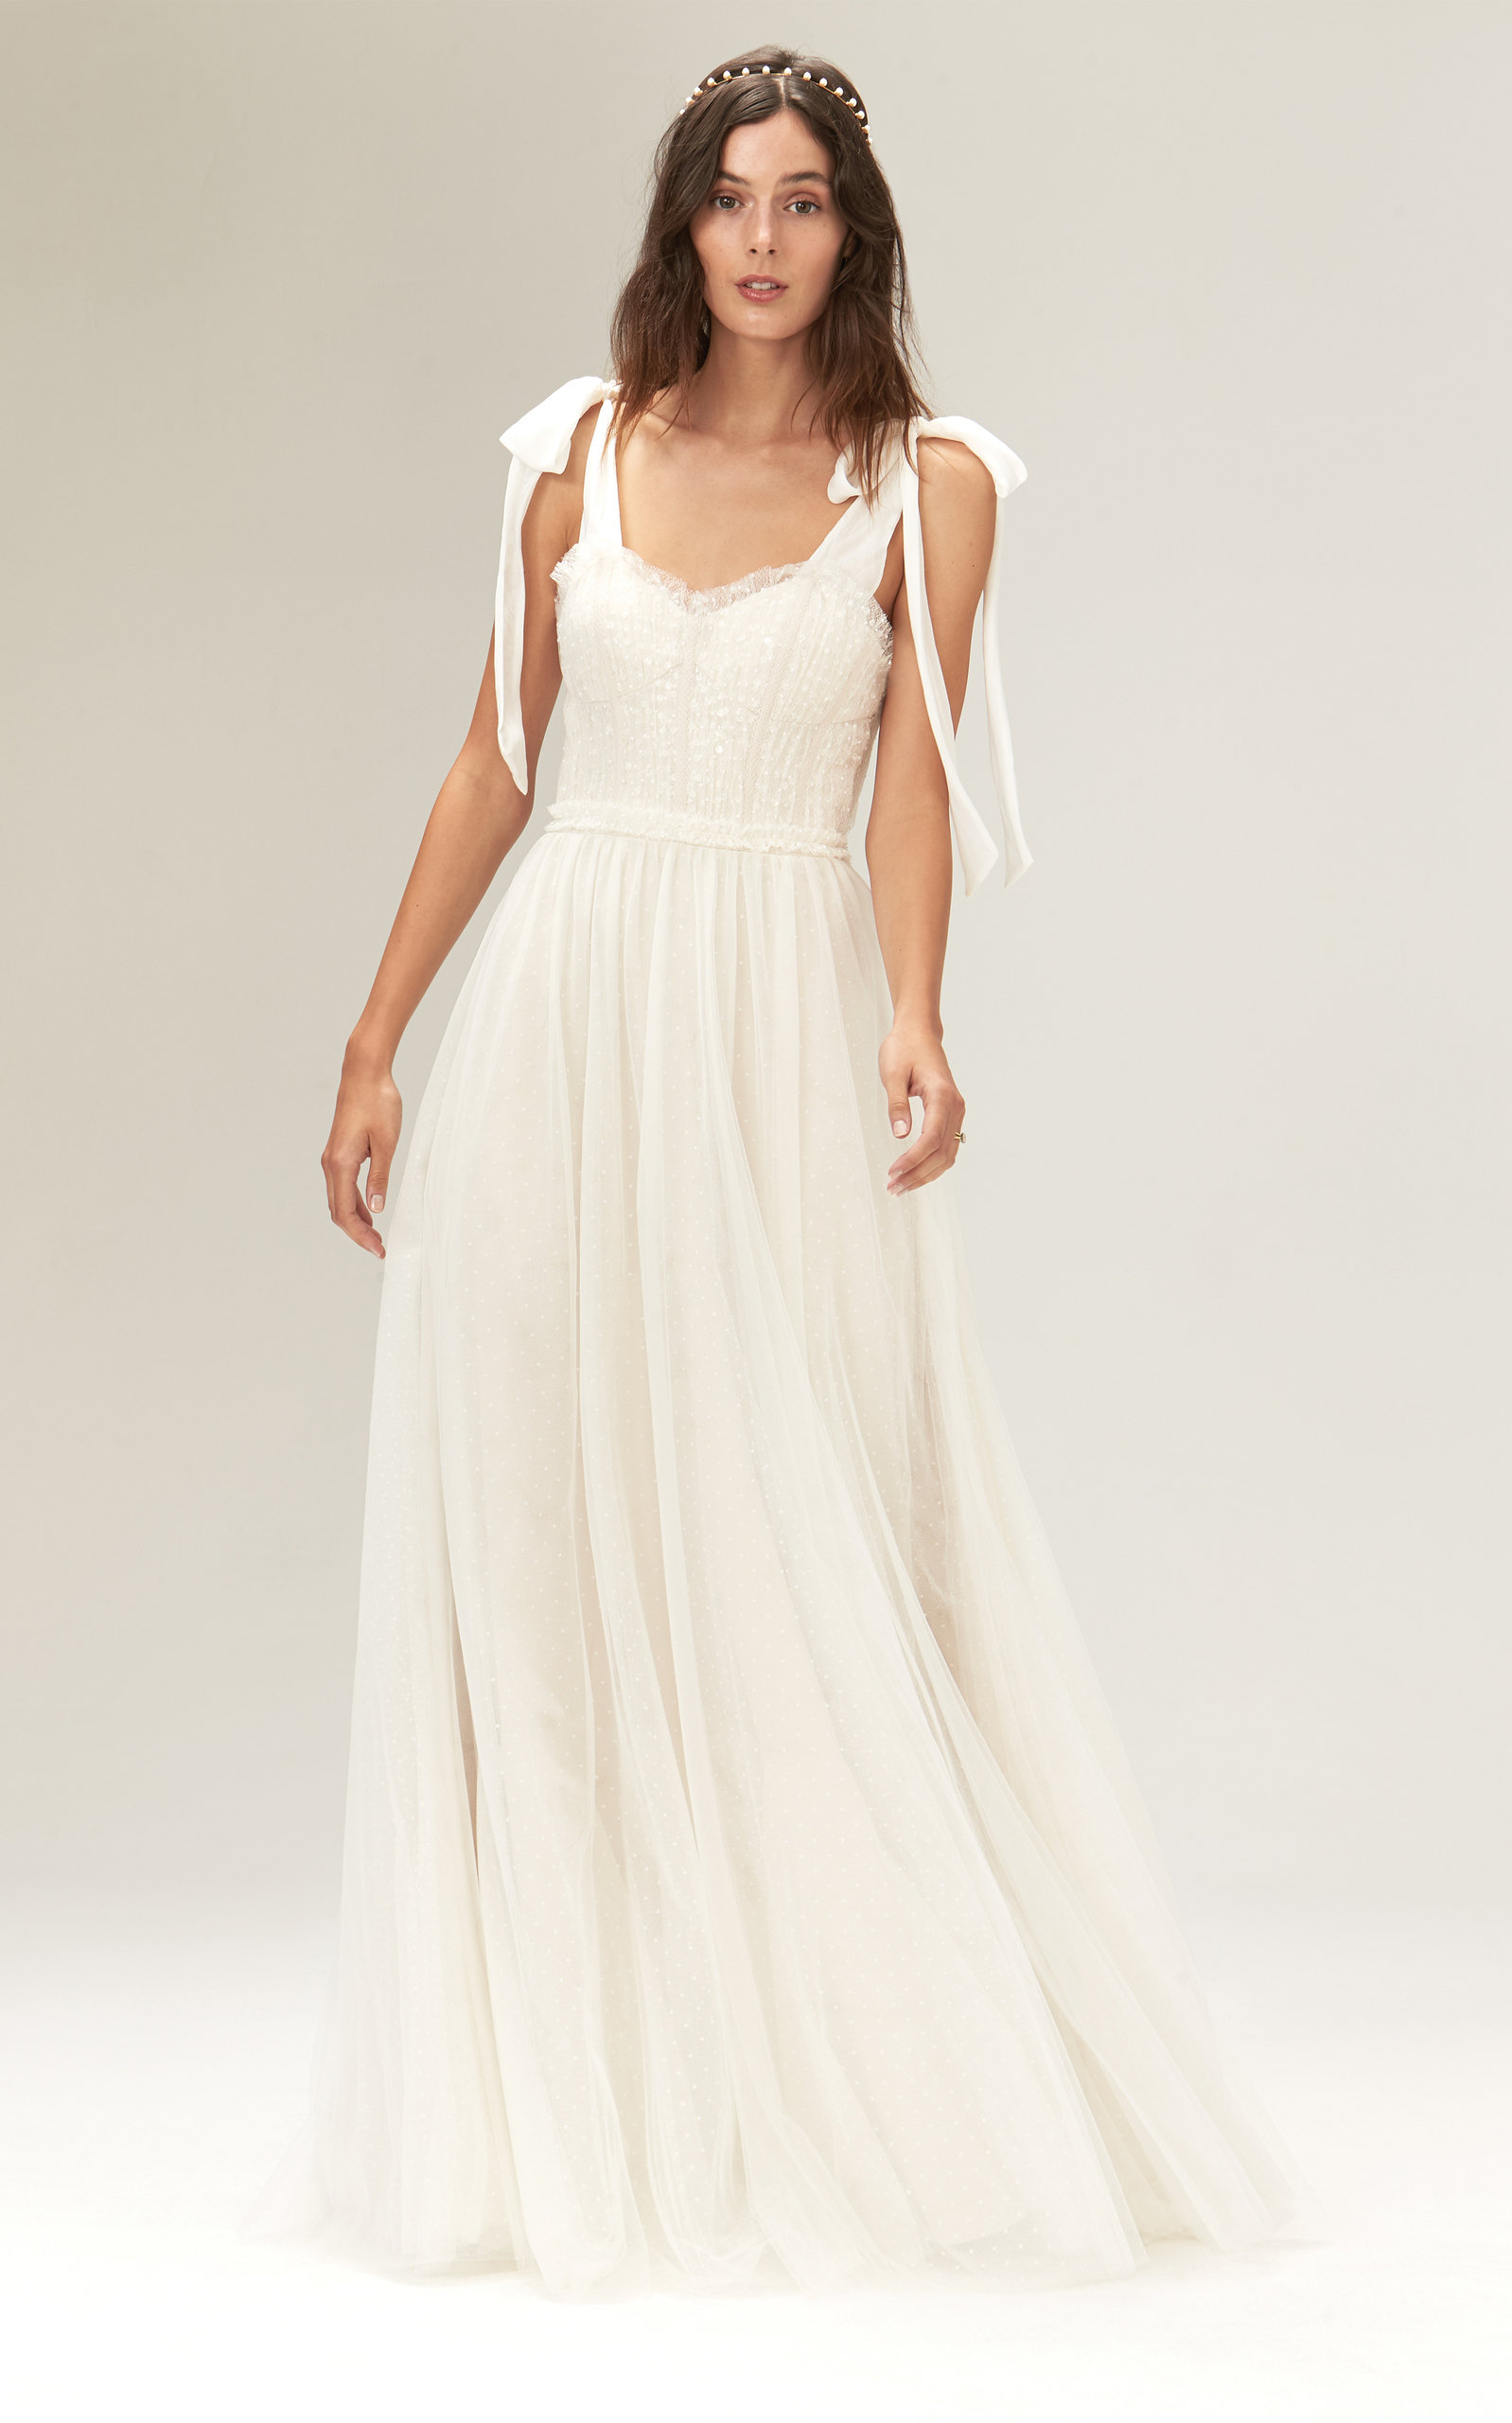 Savannah Miller - Minnie Fit And Flare Tulle Gown With Sequins And Layered Tulle